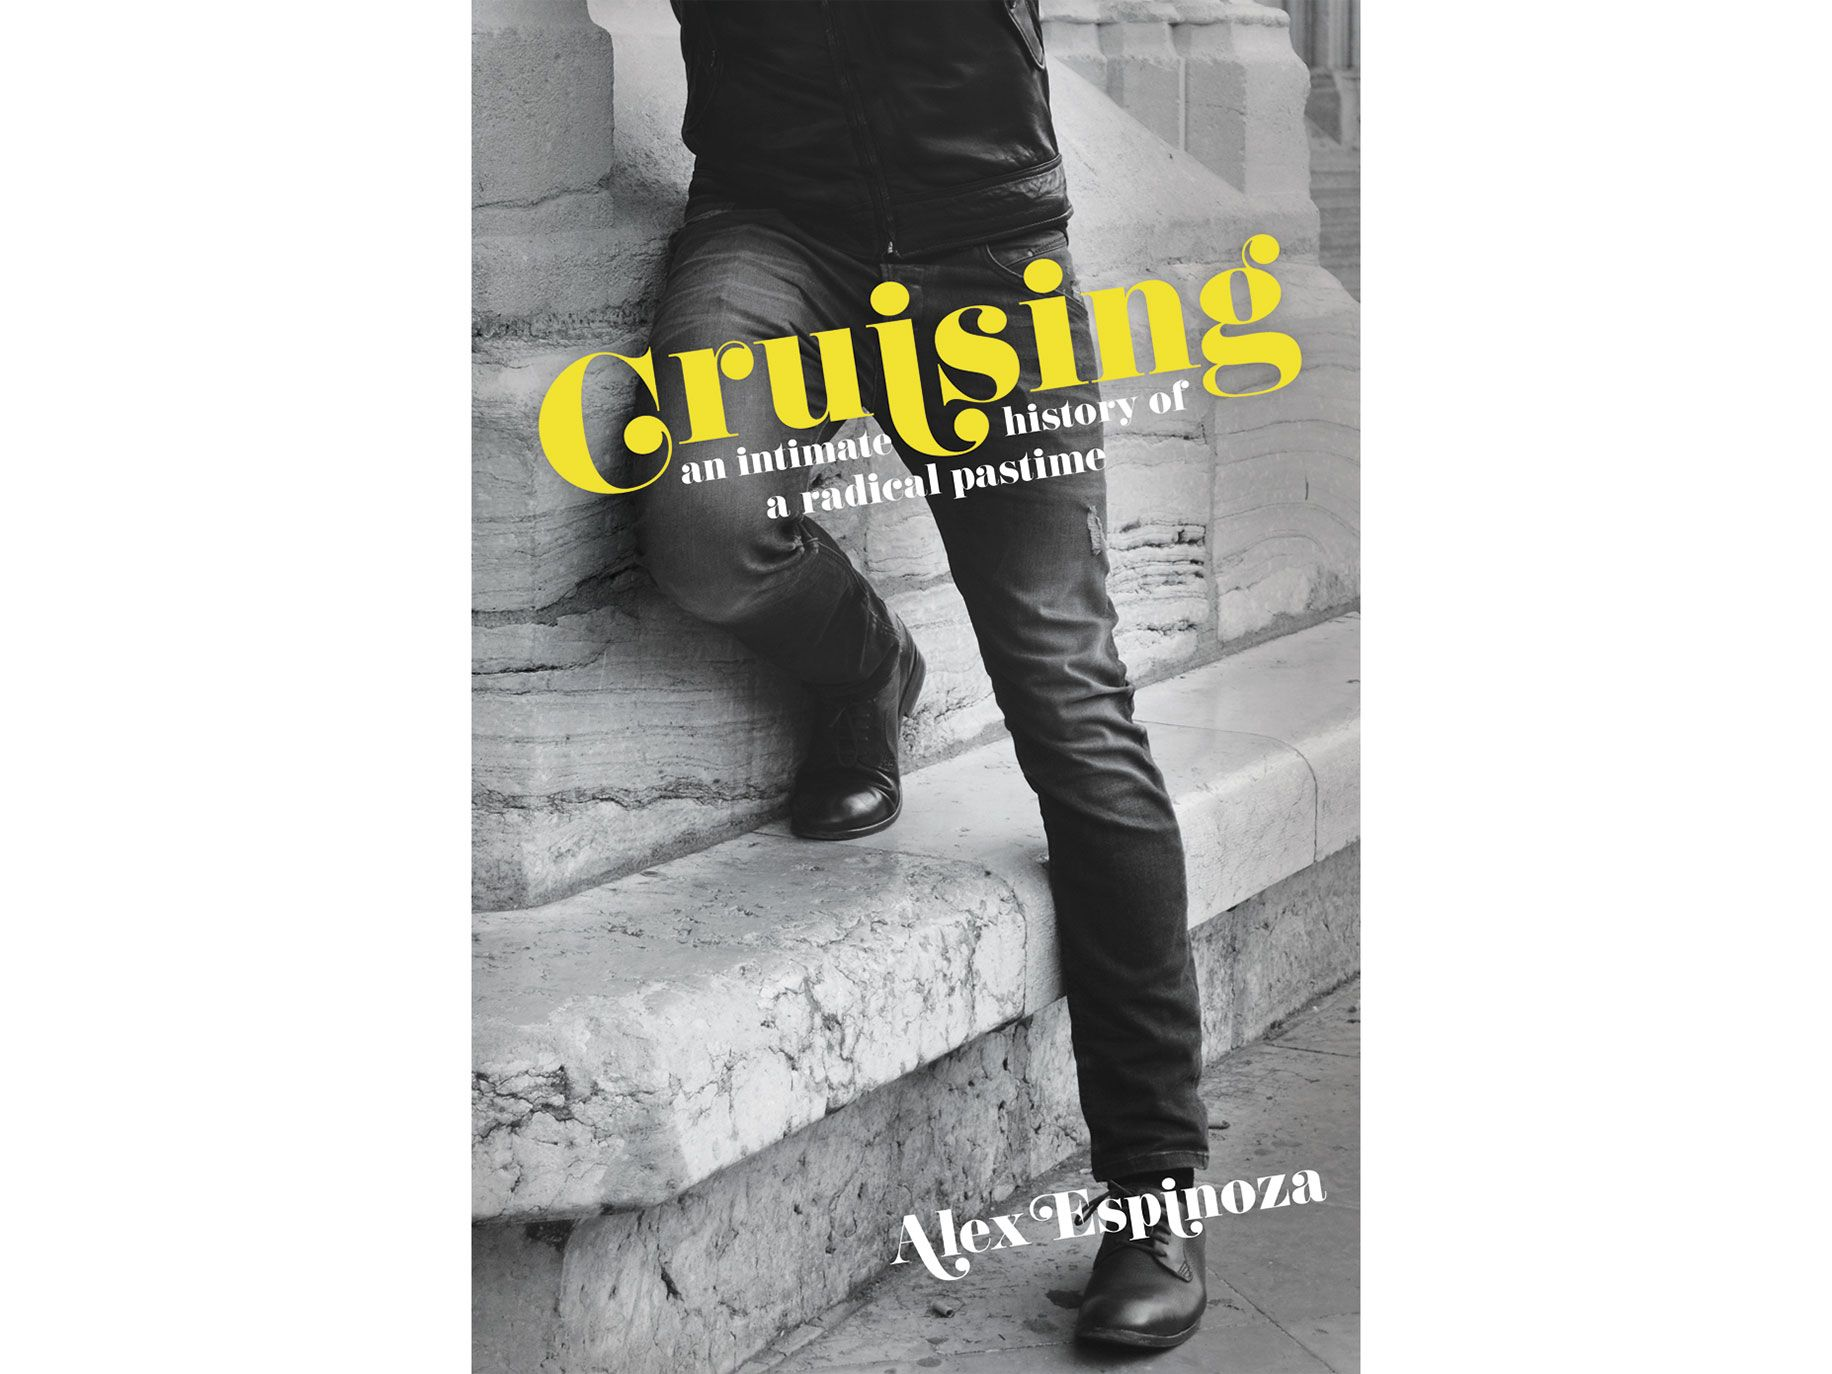 Cruising: An Intimate History of a Radical Pastime by Alex Espinoza, Unnamed Press, 240 pages, $21.99